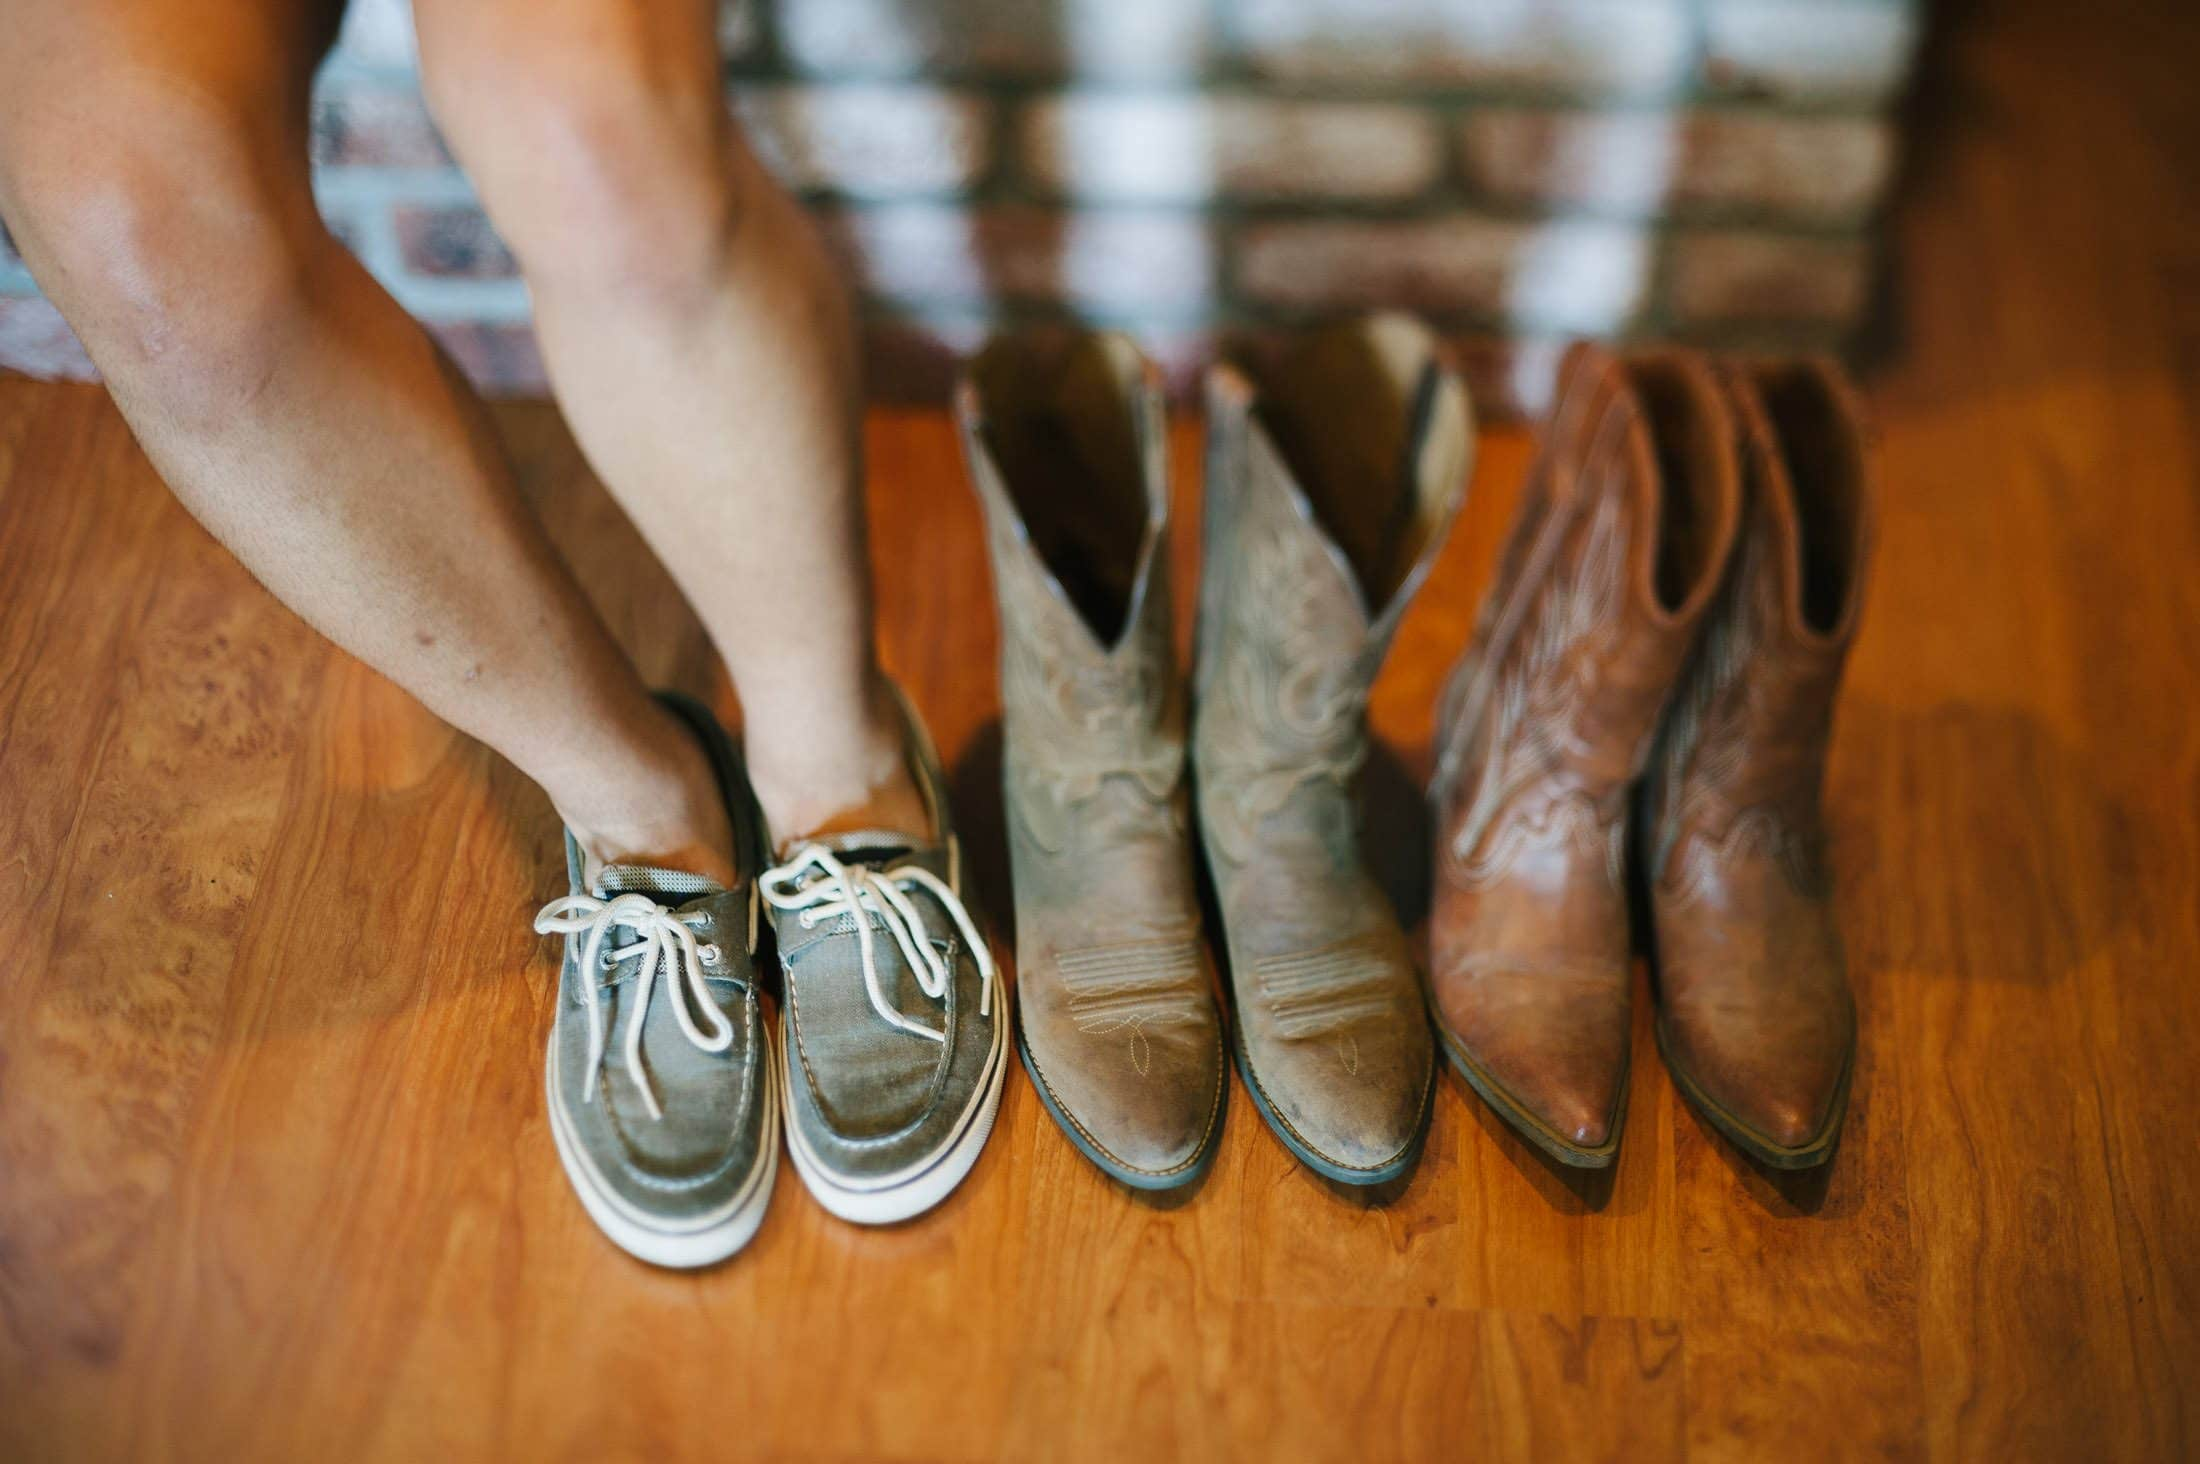 Artistic wedding detail of shoes and boots